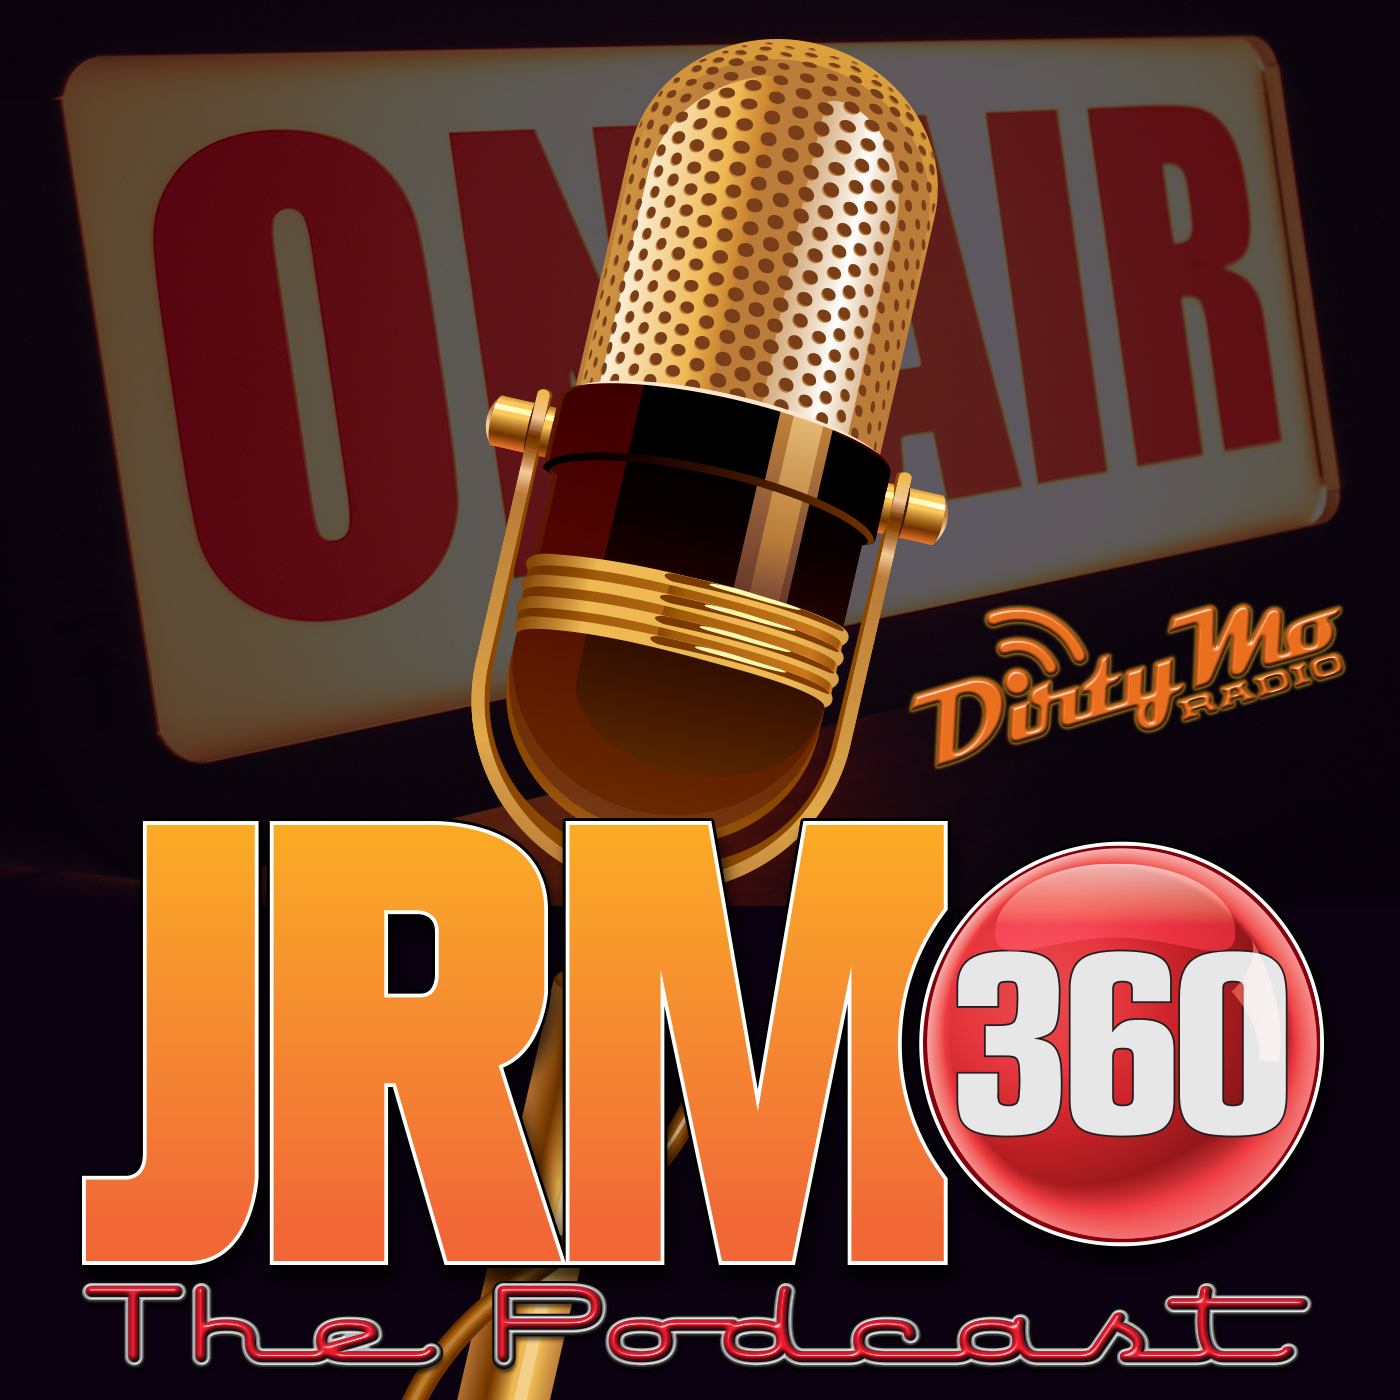 JRM 360 The Podcast - Dirty Mo Media